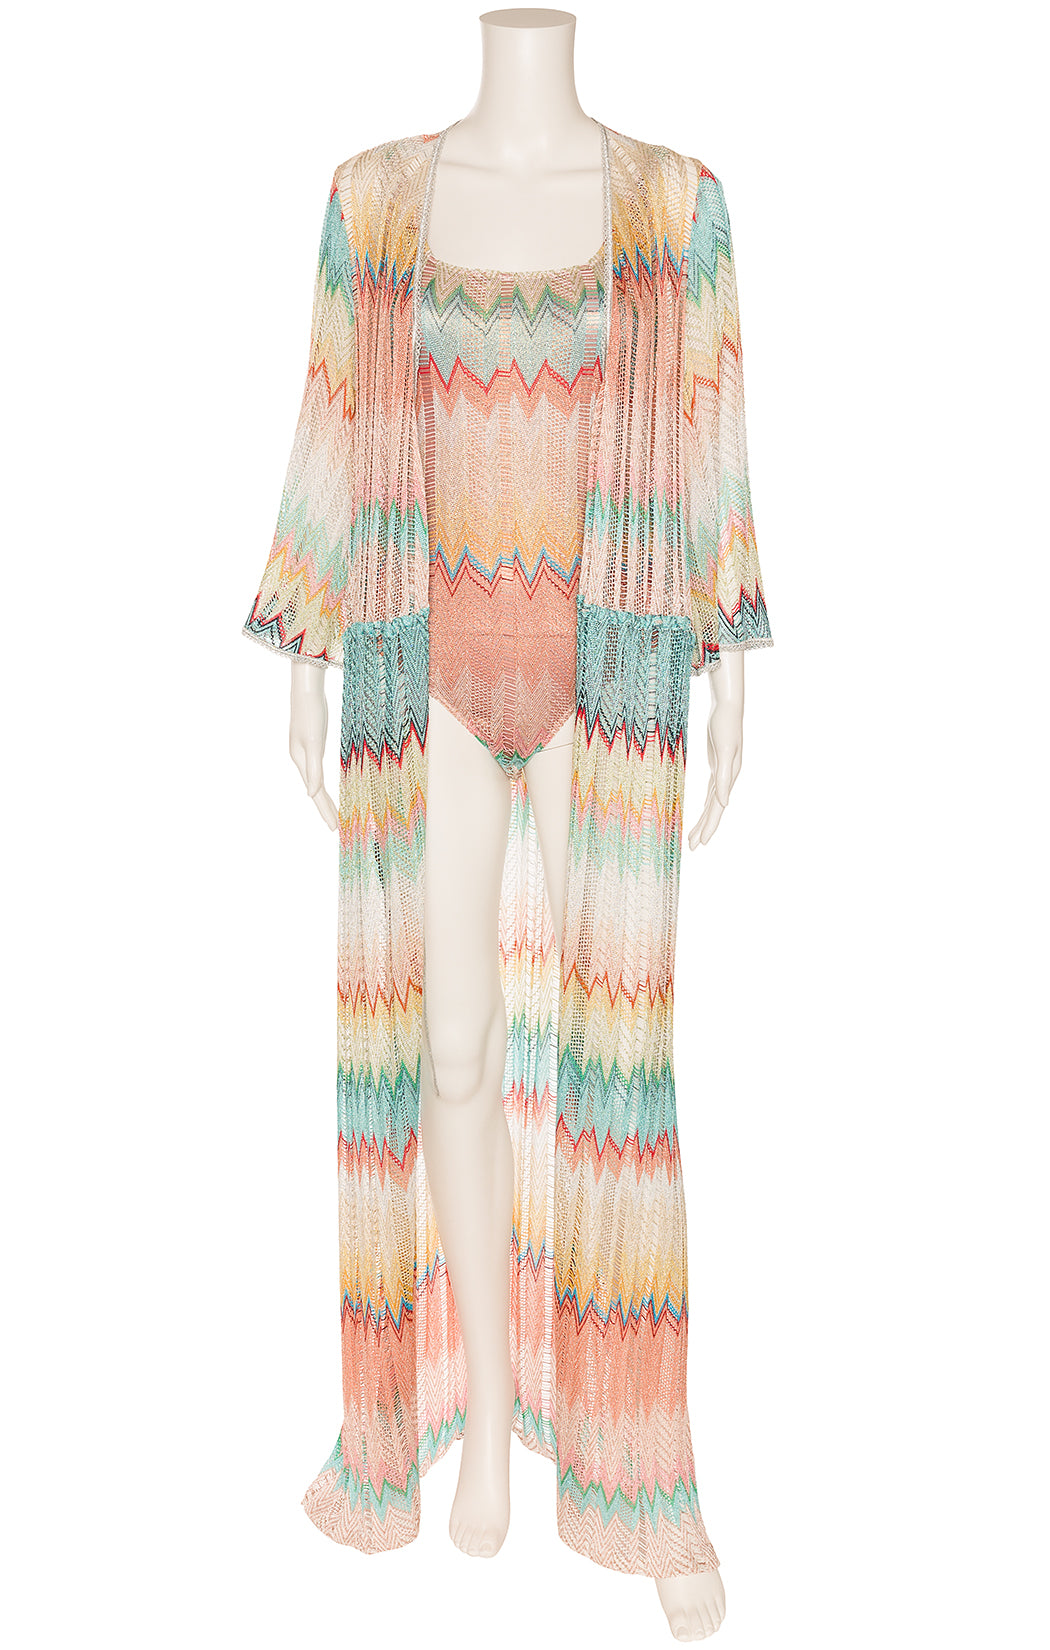 MISSONI MARE Coverup and one piece bathing suit  Size: Coverup IT 42 (comparable to US 4-6) One piece bathing suit IT 44 (comparable to US 6-8)